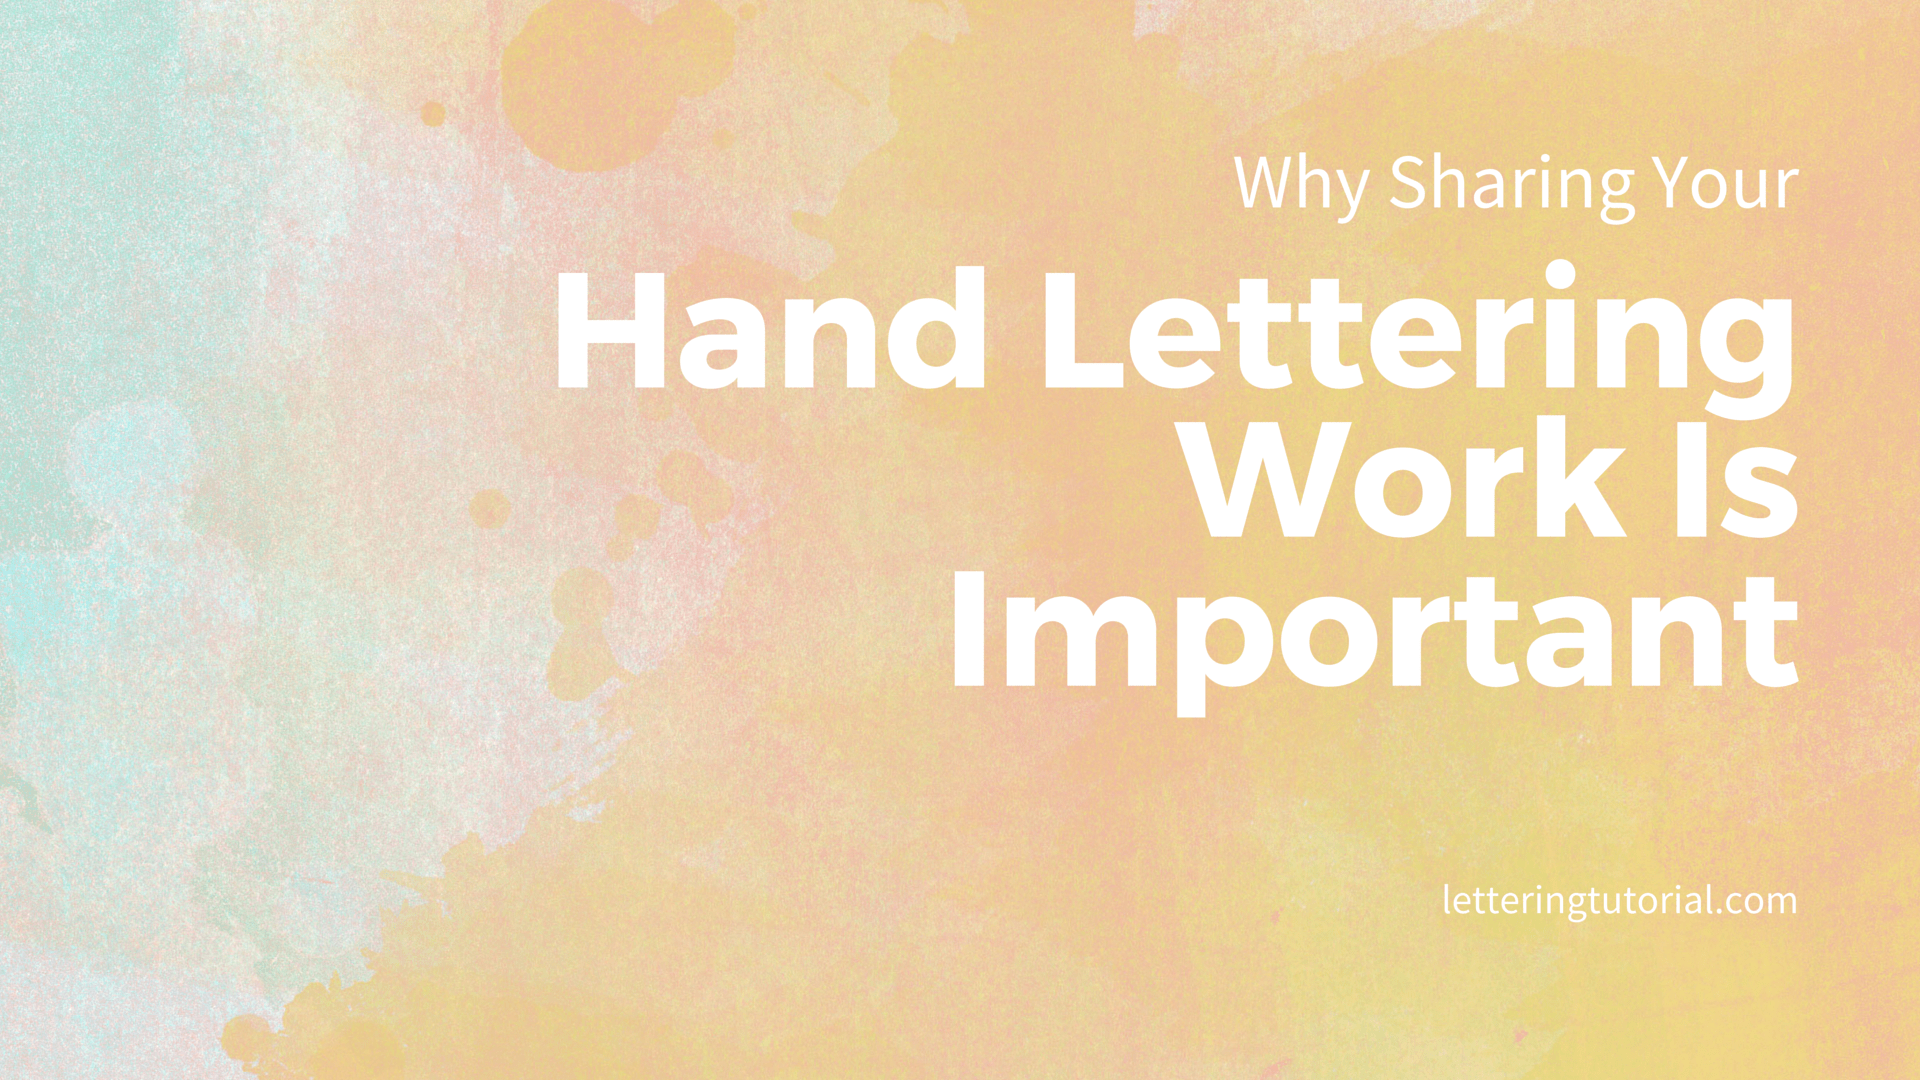 Why Sharing Your Hand Lettering Work Is Important - Lettering Tutorial